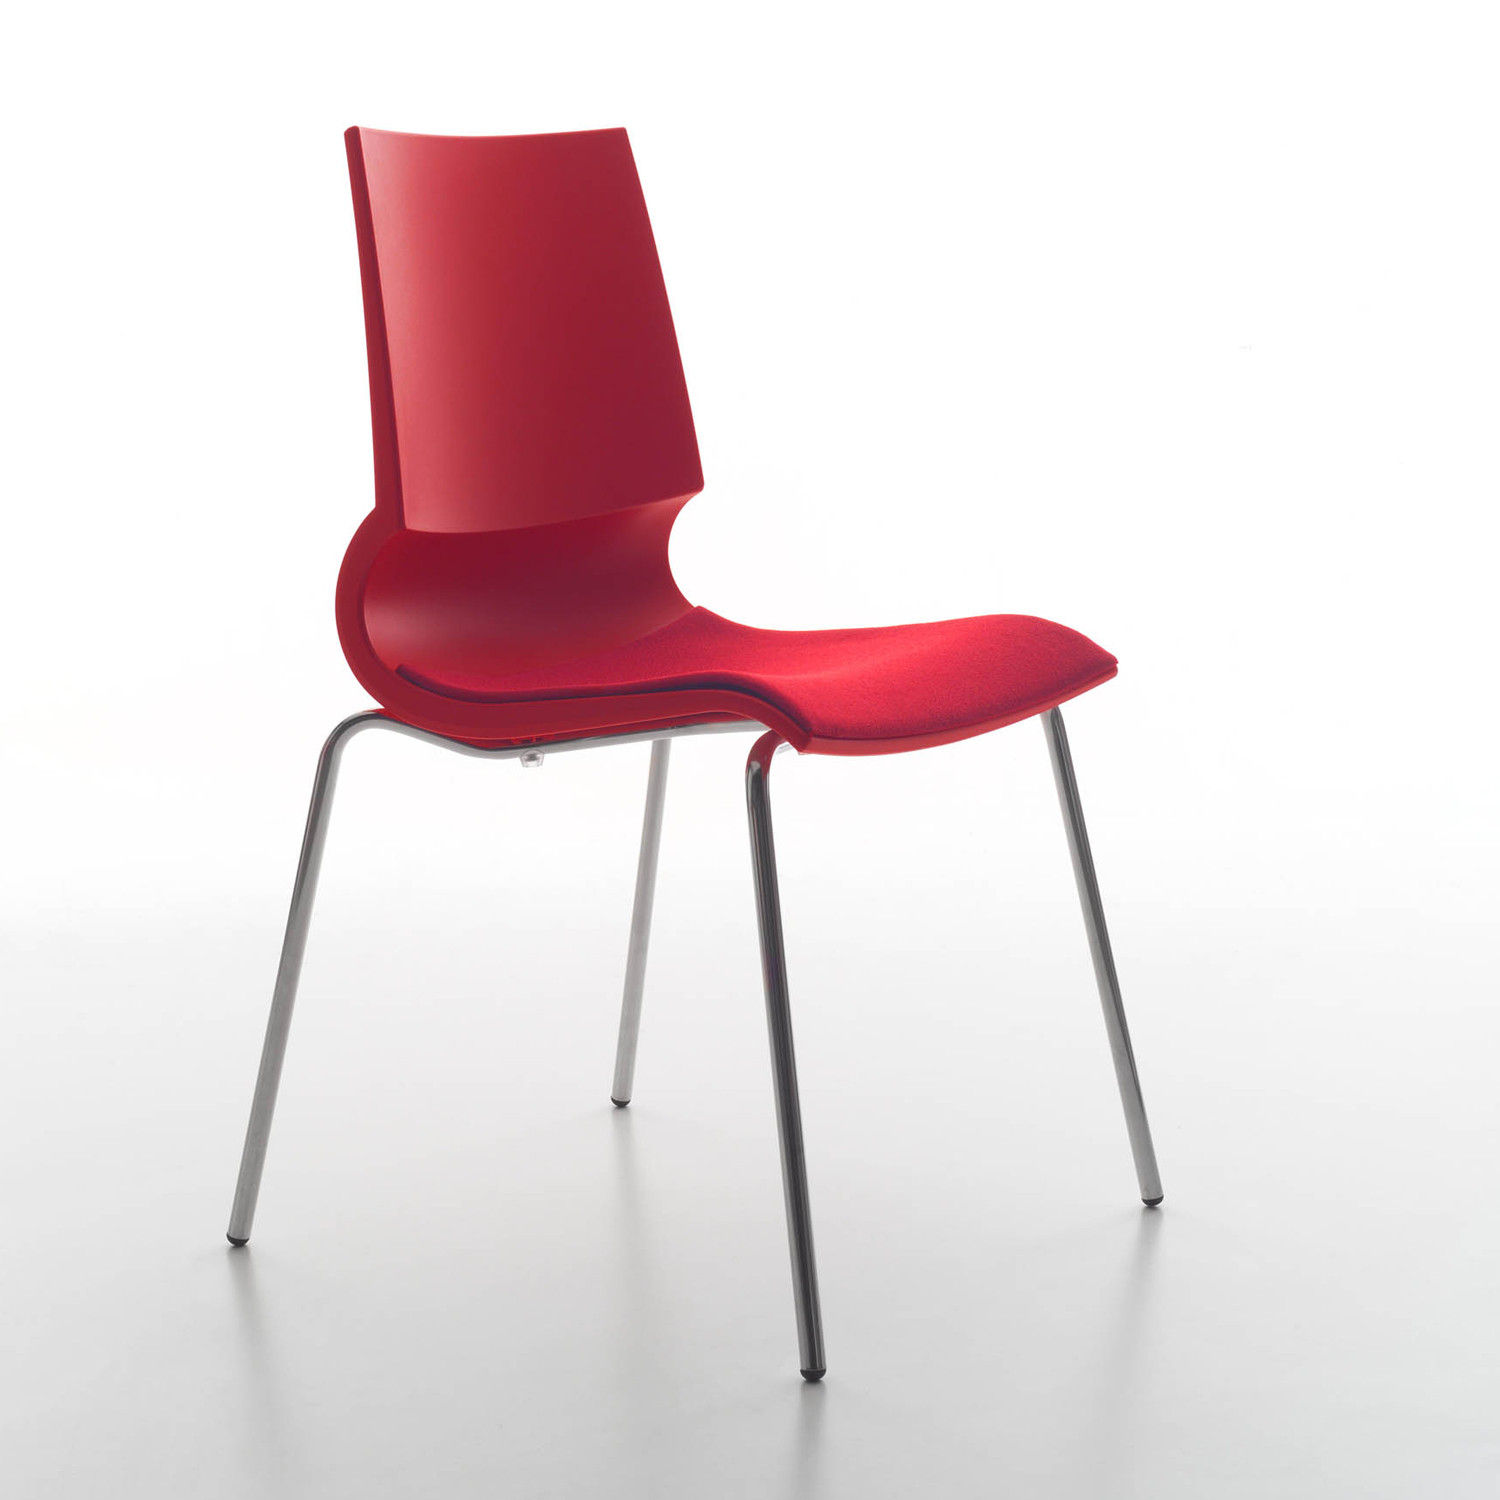 Ricciolina Chair by MaxDesign